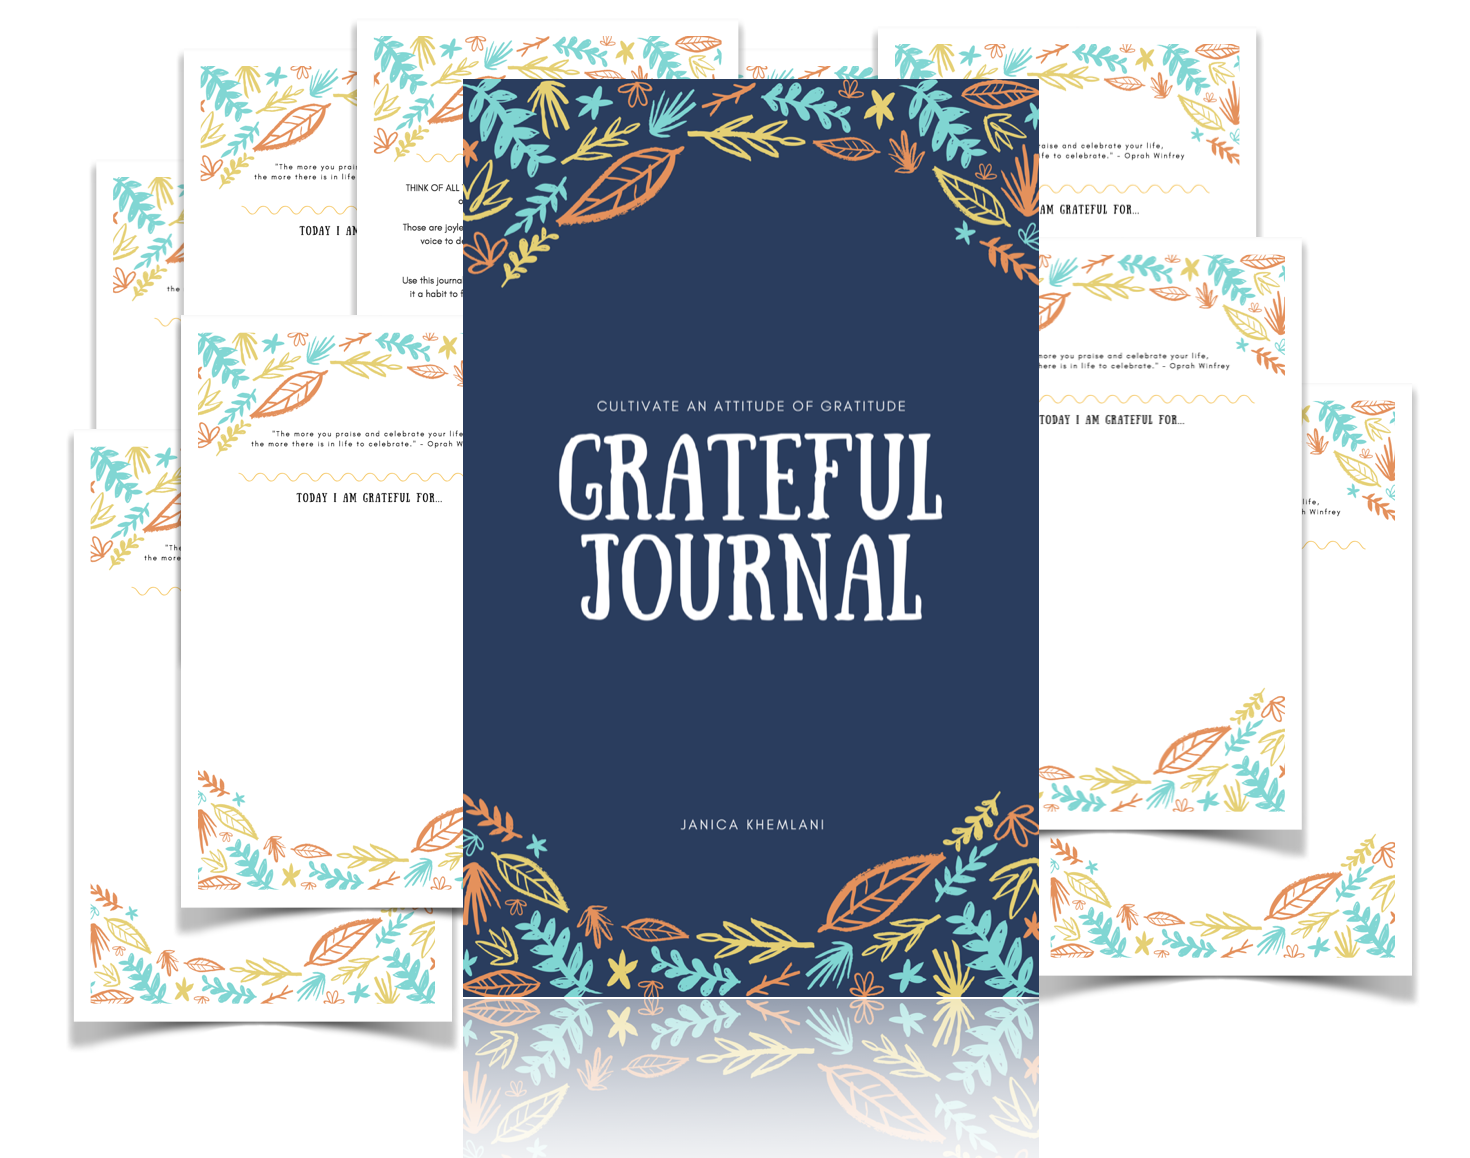 The Grateful Journal